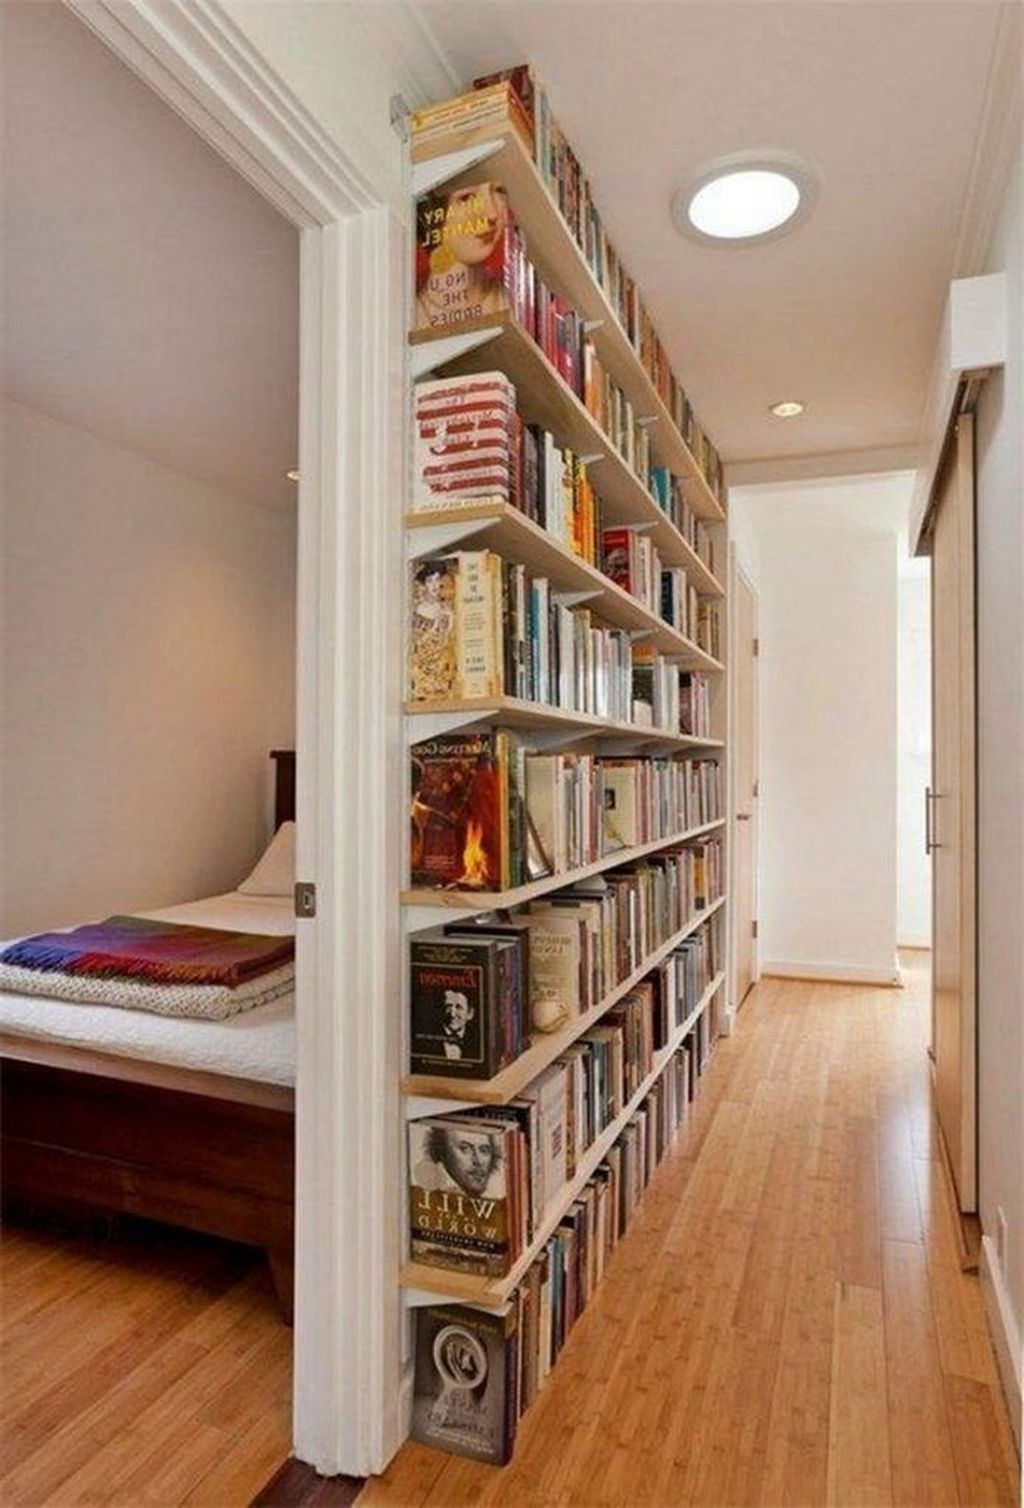 12 The Best Apartment Organization To Easily Improve Your Room ...